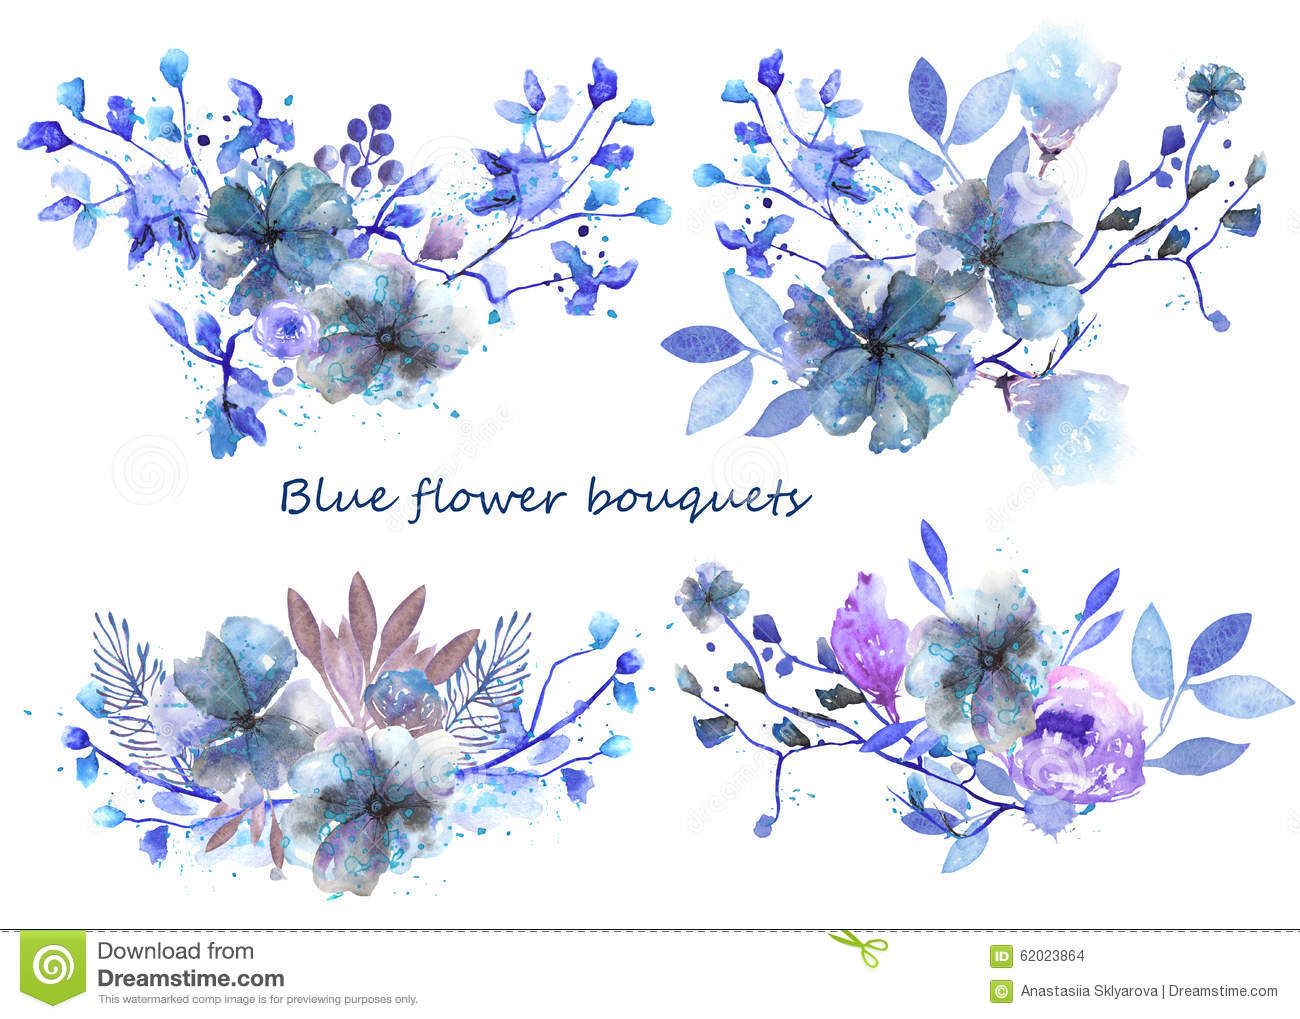 ... in watercolor on a white background for greeting card or invitation